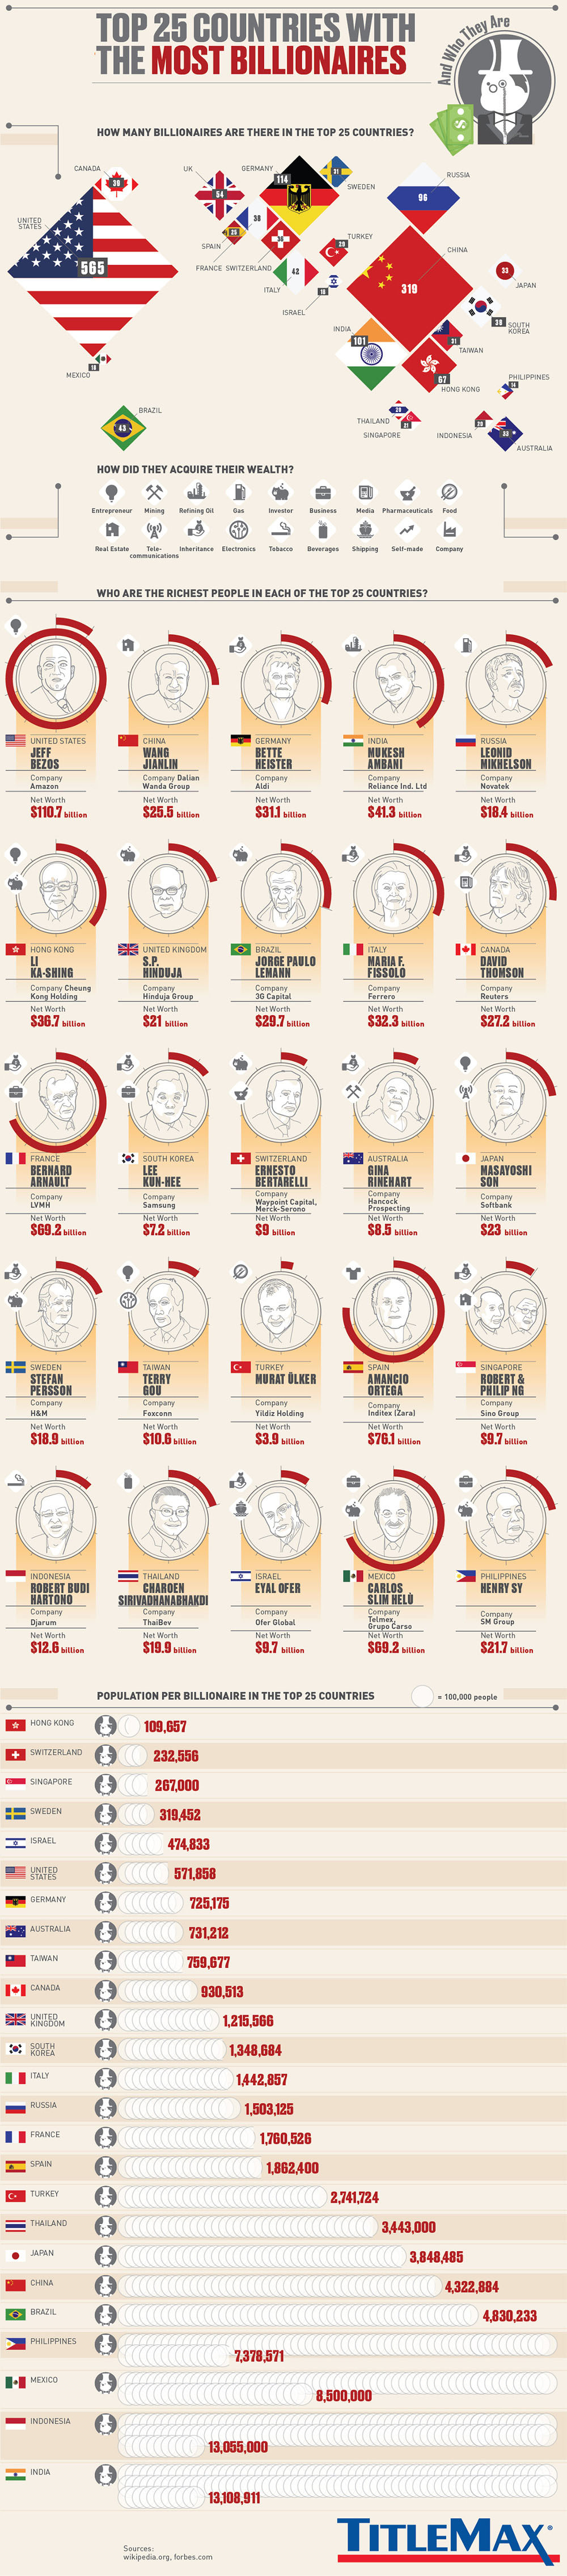 Top 25 Countries with the Most Billionaires